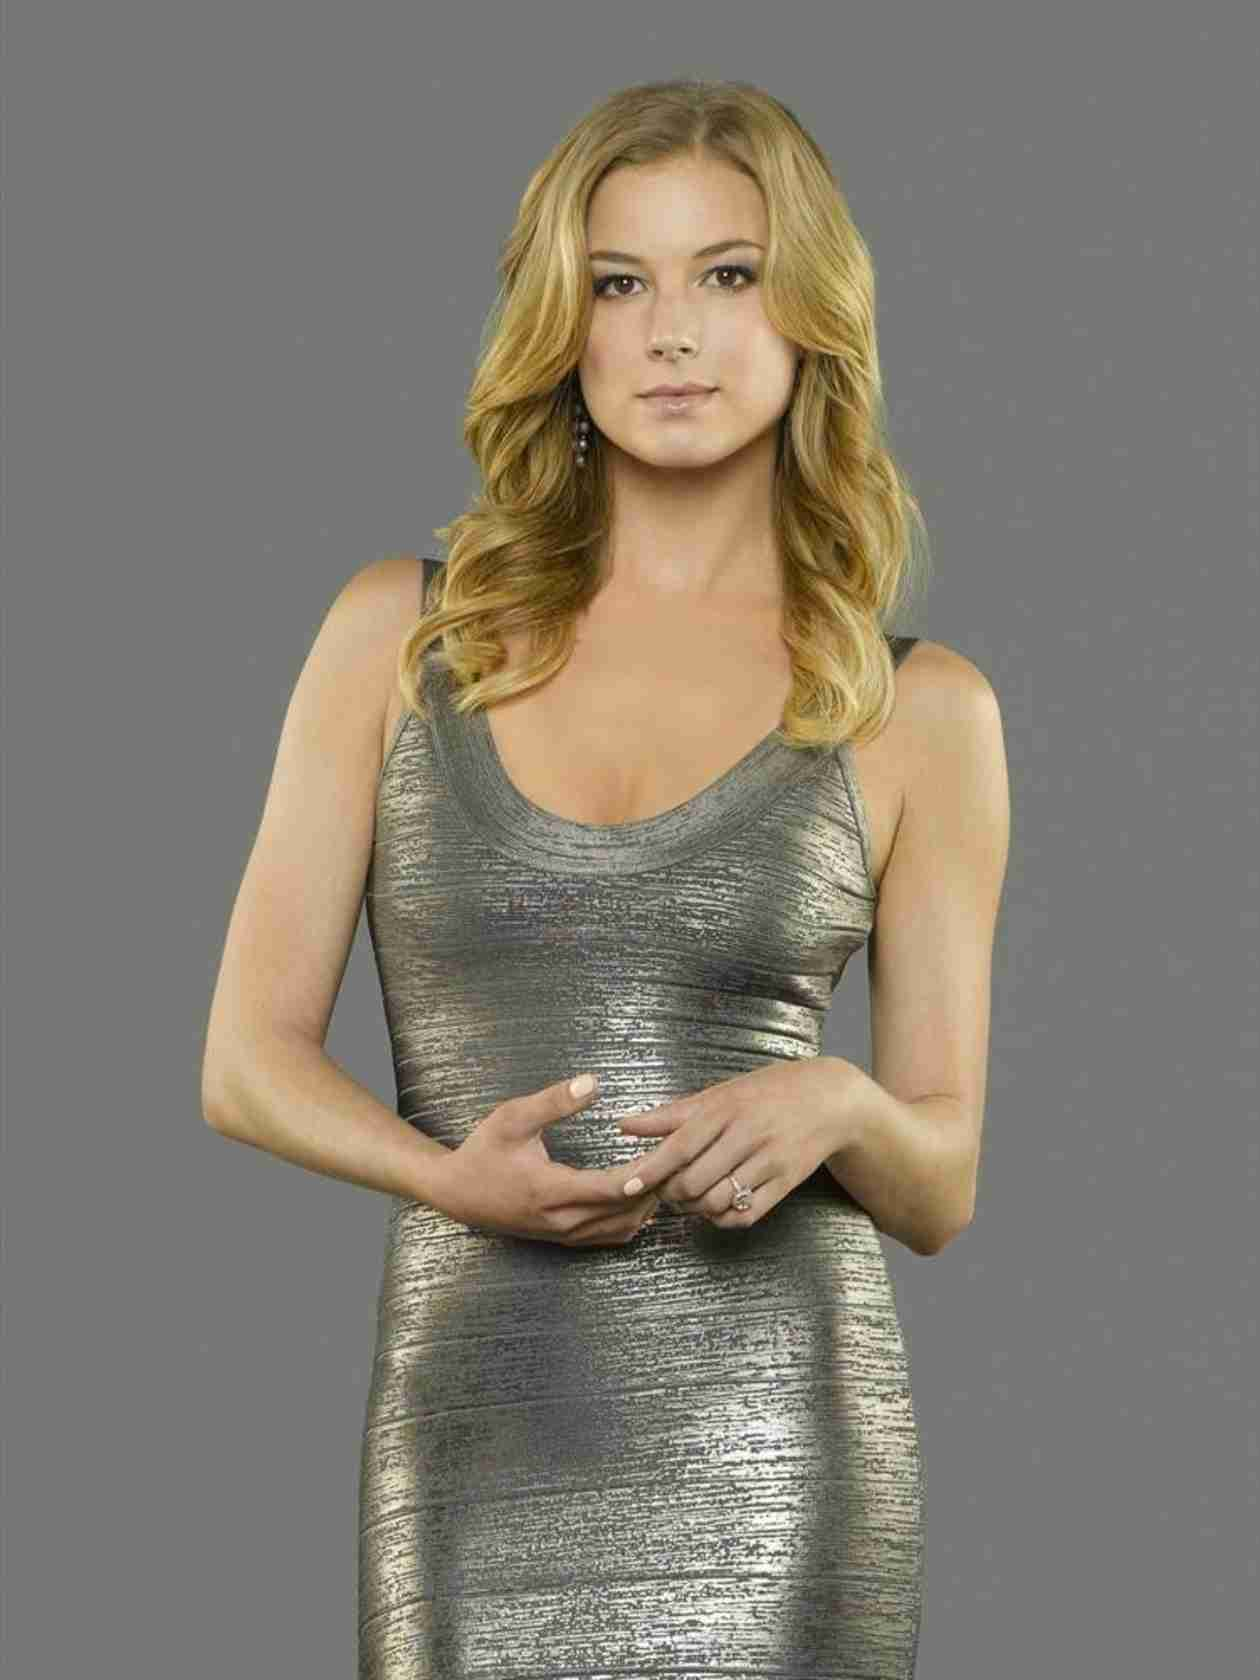 Which of These Is NOT a Huge Turn-Off For Emily VanCamp?